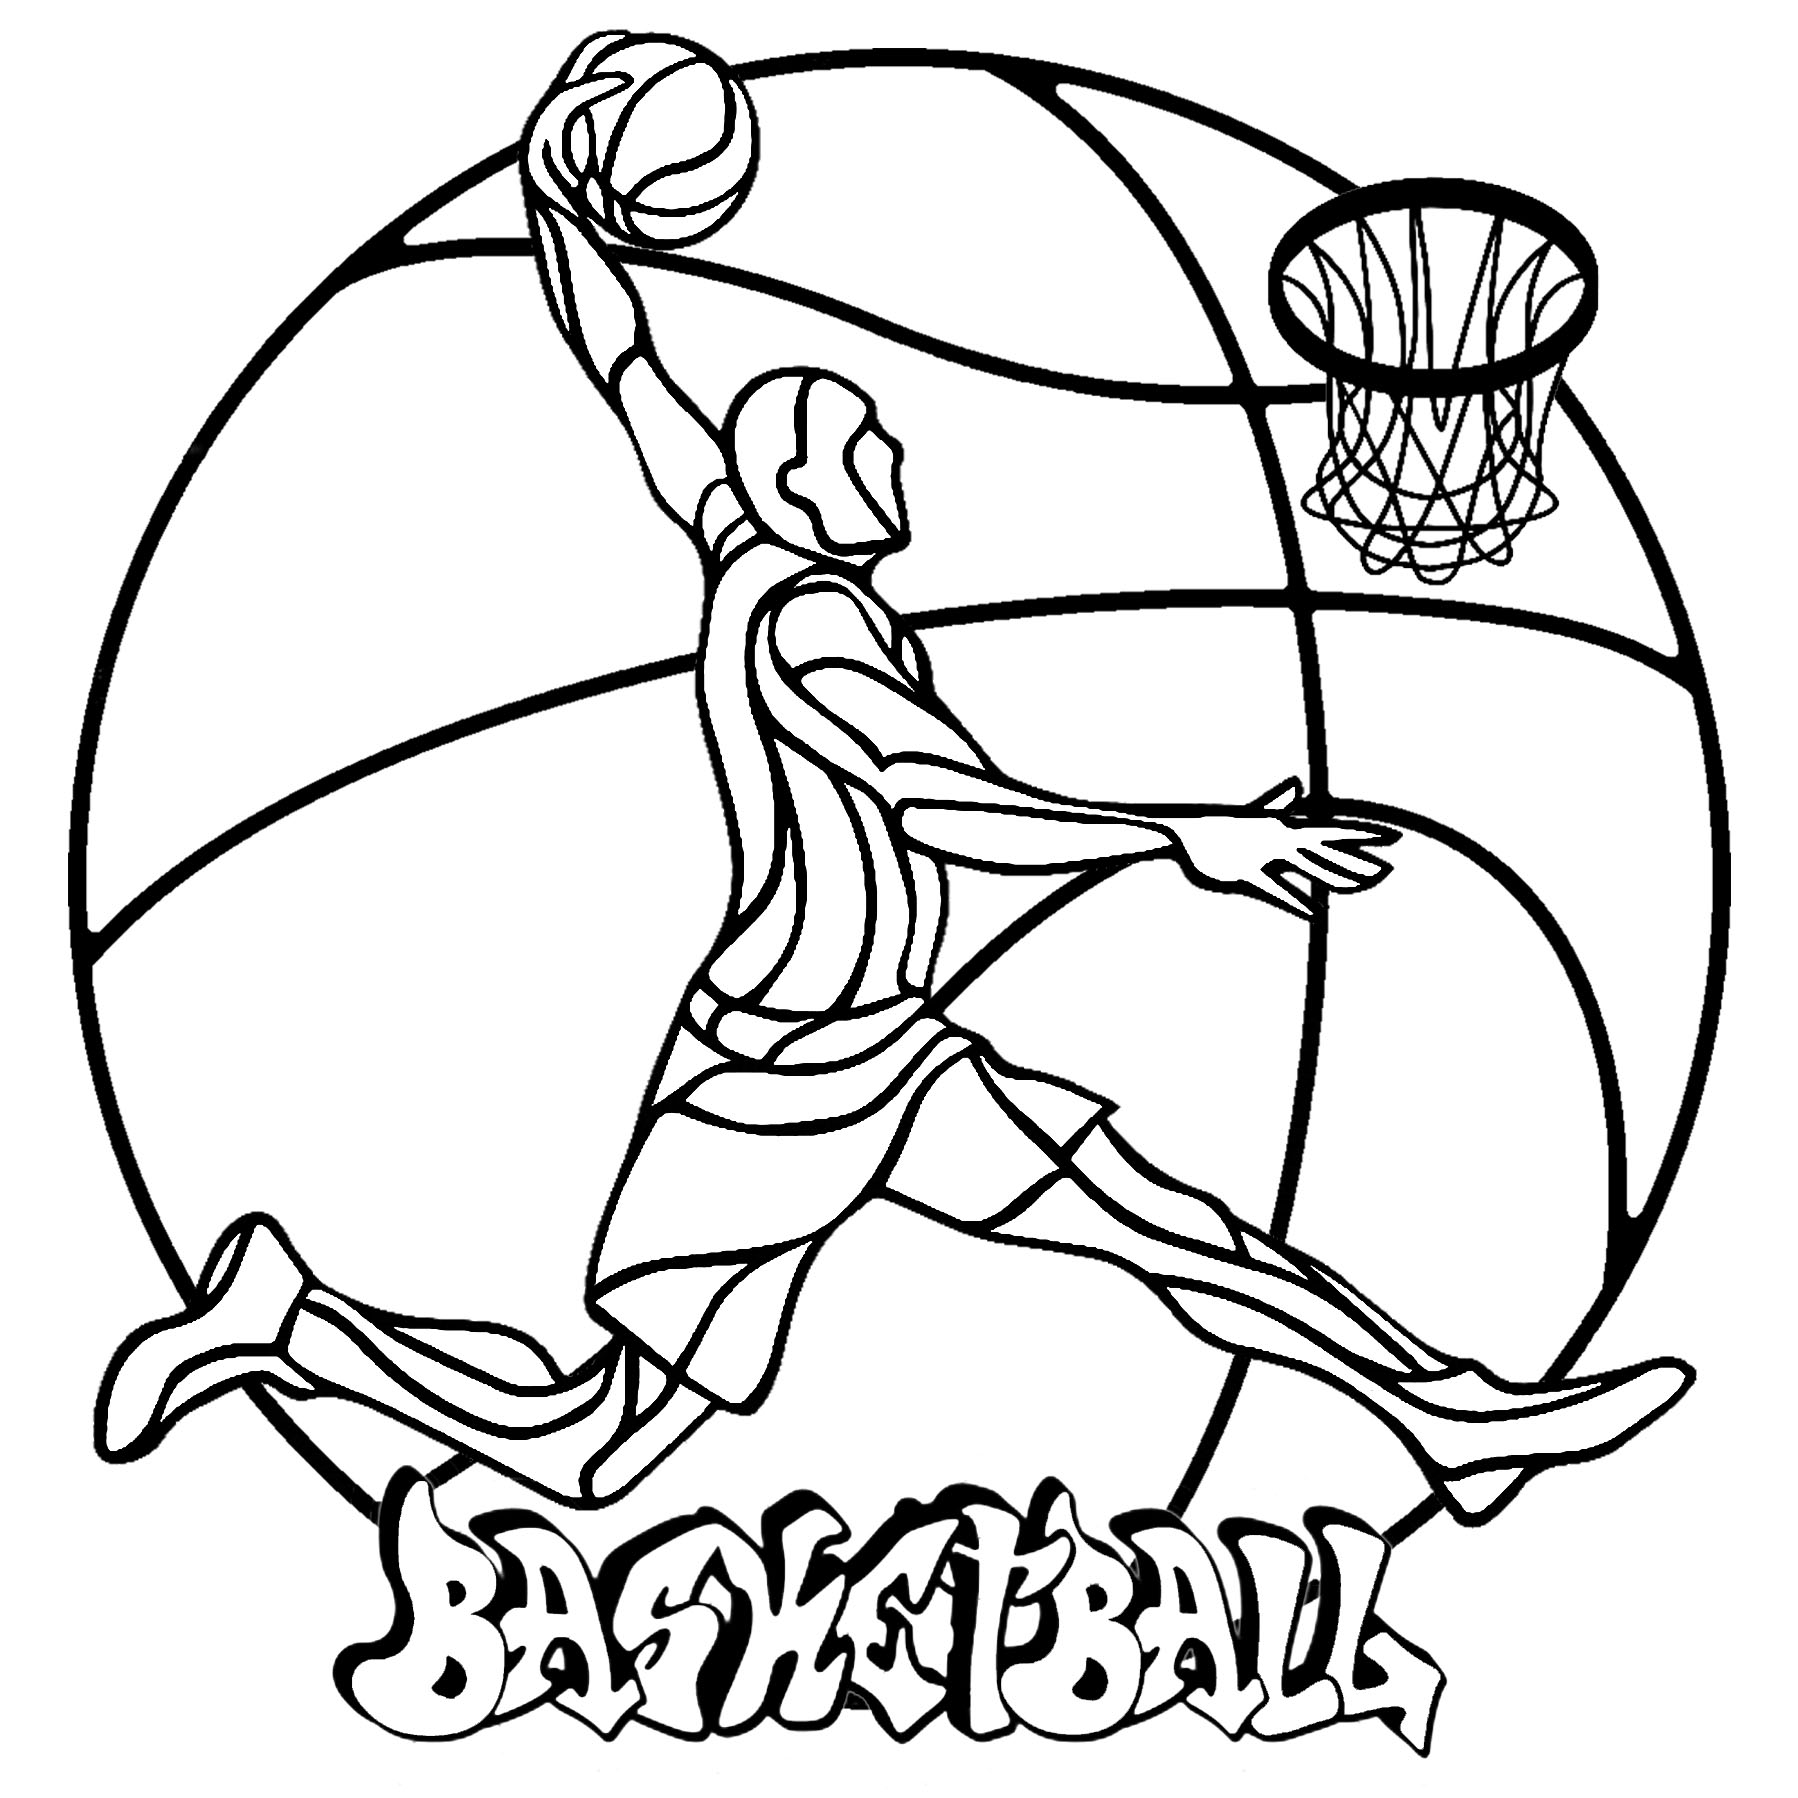 basketball player mandalas with characters 100 mandalas zen anti stress. Black Bedroom Furniture Sets. Home Design Ideas